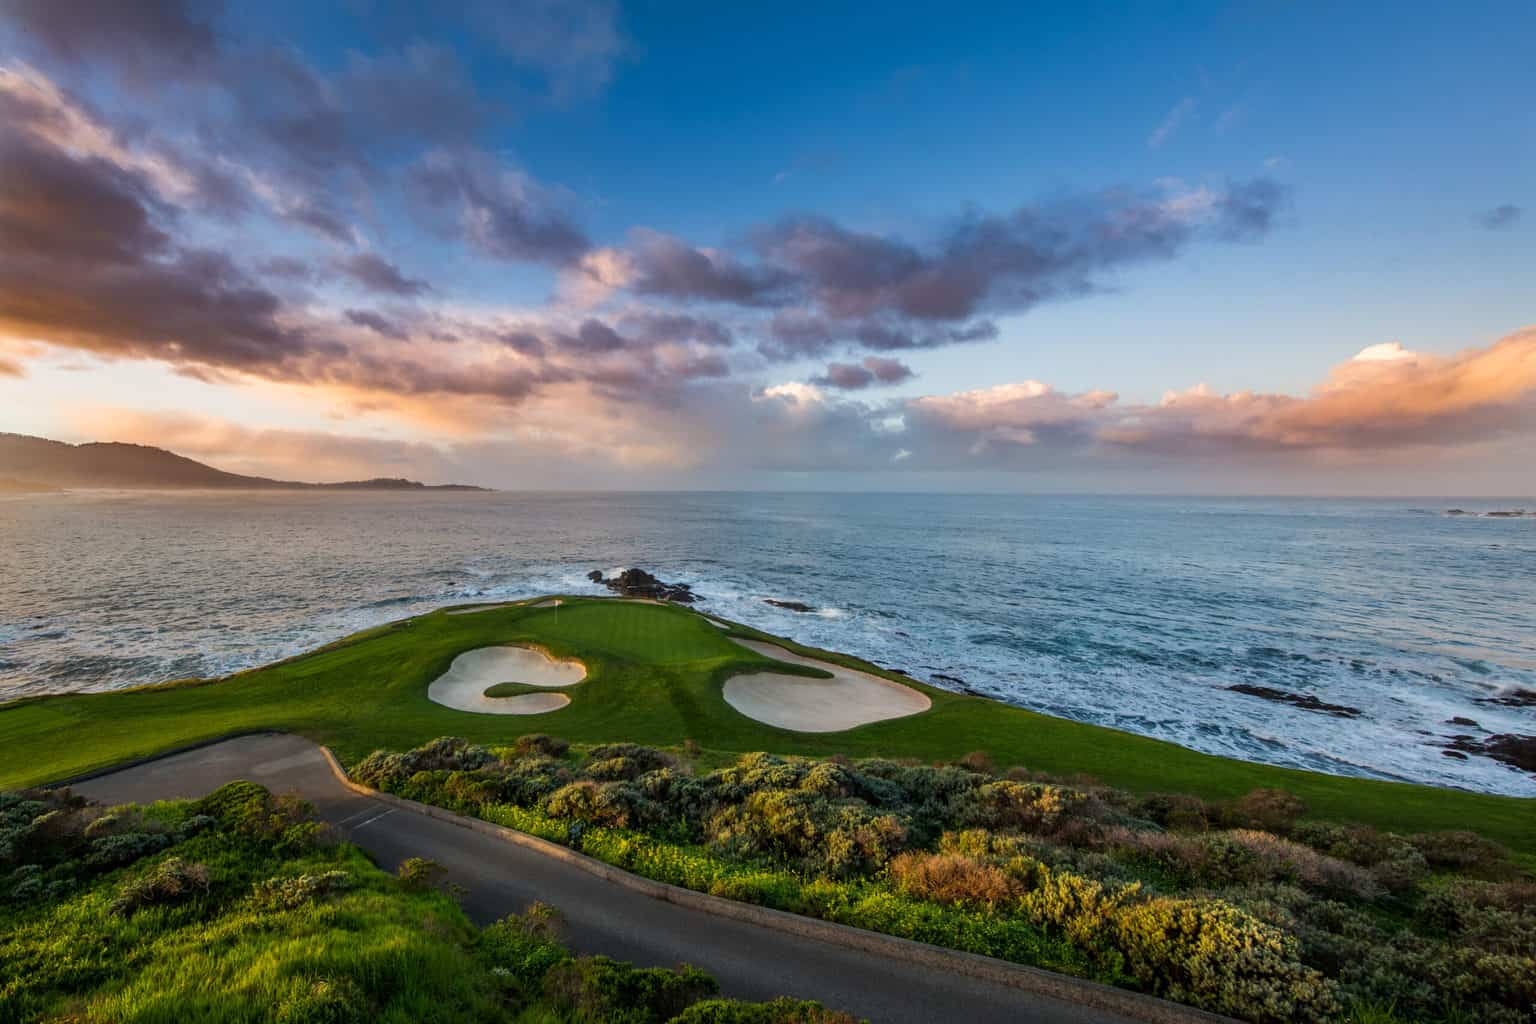 On every golfer's bucket list, a round at Pebble Beach.